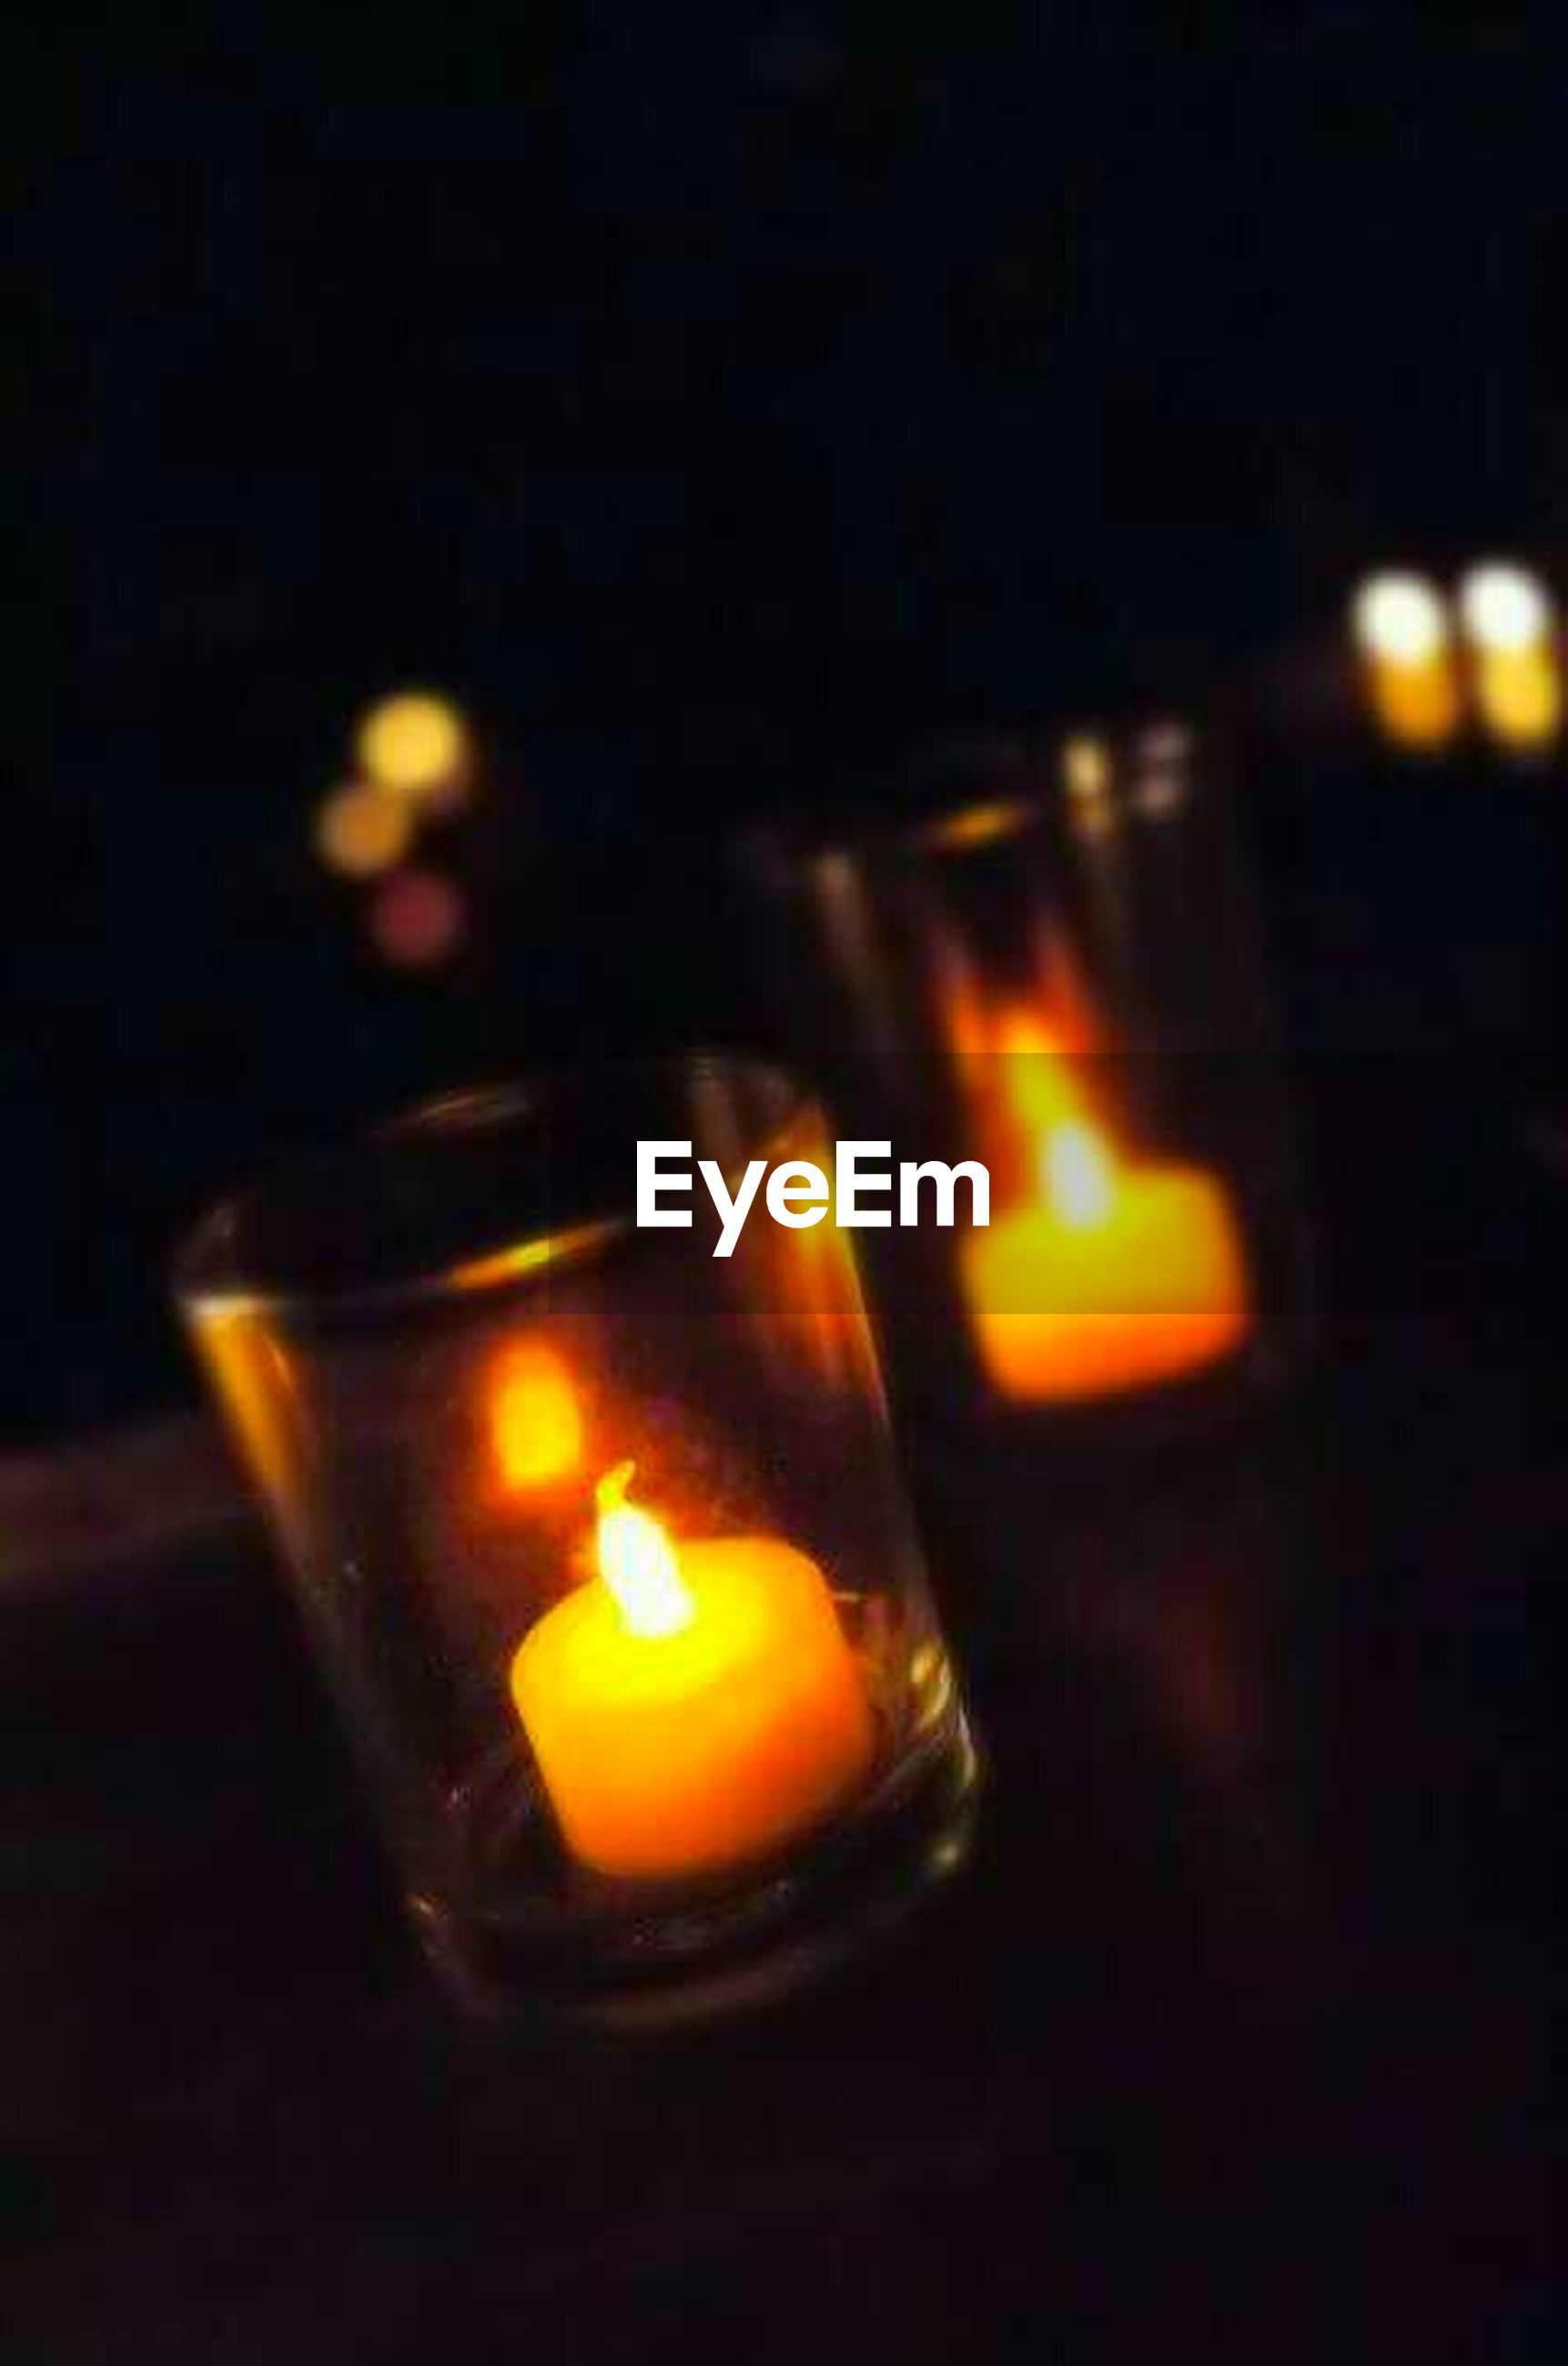 burning, flame, fire - natural phenomenon, illuminated, heat - temperature, glowing, candle, close-up, lit, light - natural phenomenon, in a row, candlelight, orange color, darkroom, fire, culture, no people, focus on foreground